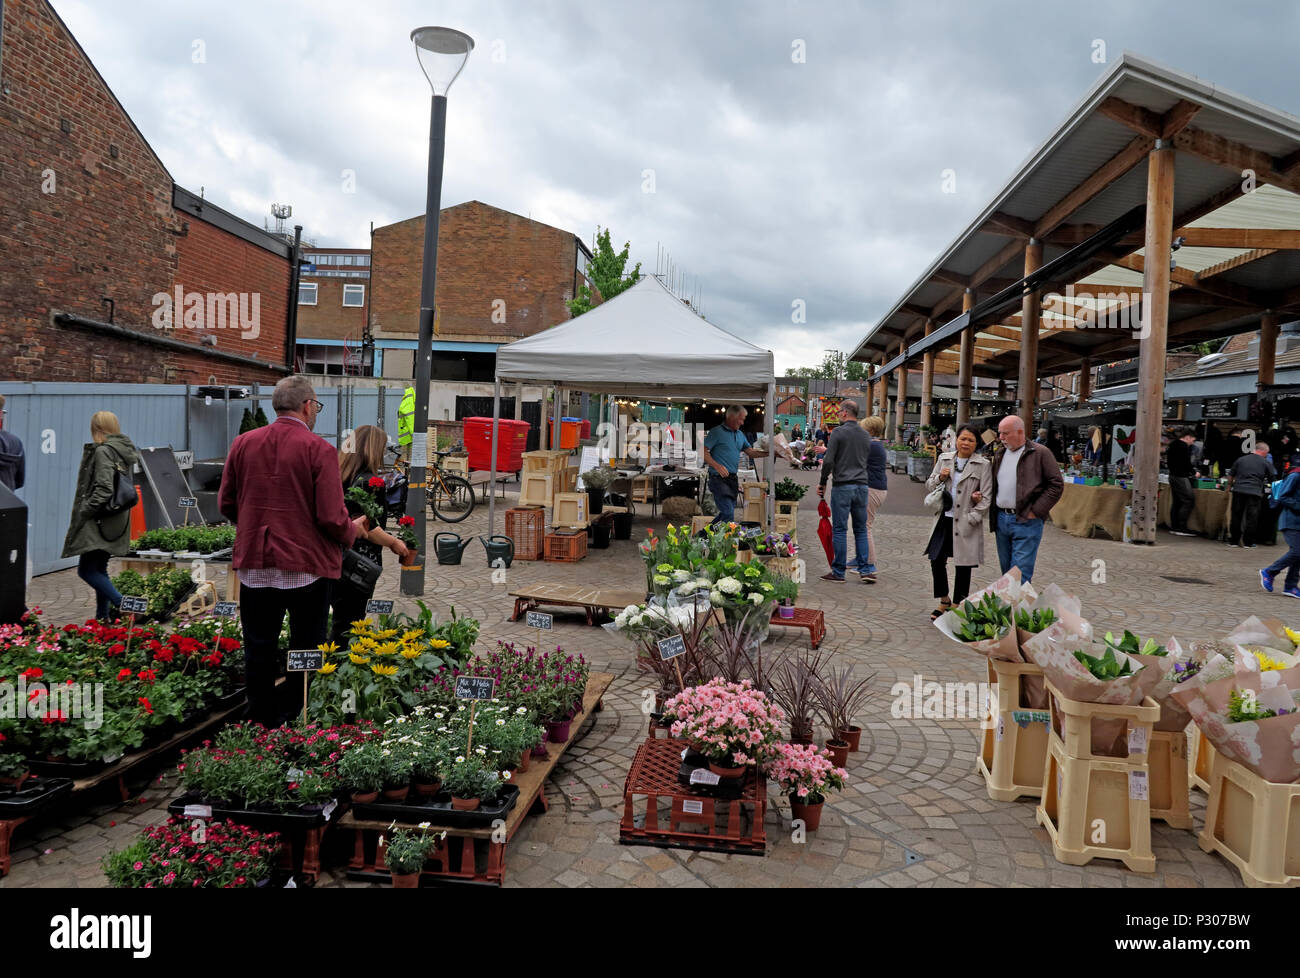 Altrincham successful retail town market (similar to Borough Market), Trafford Council, Greater Manchester, North West England, UK Stock Photo